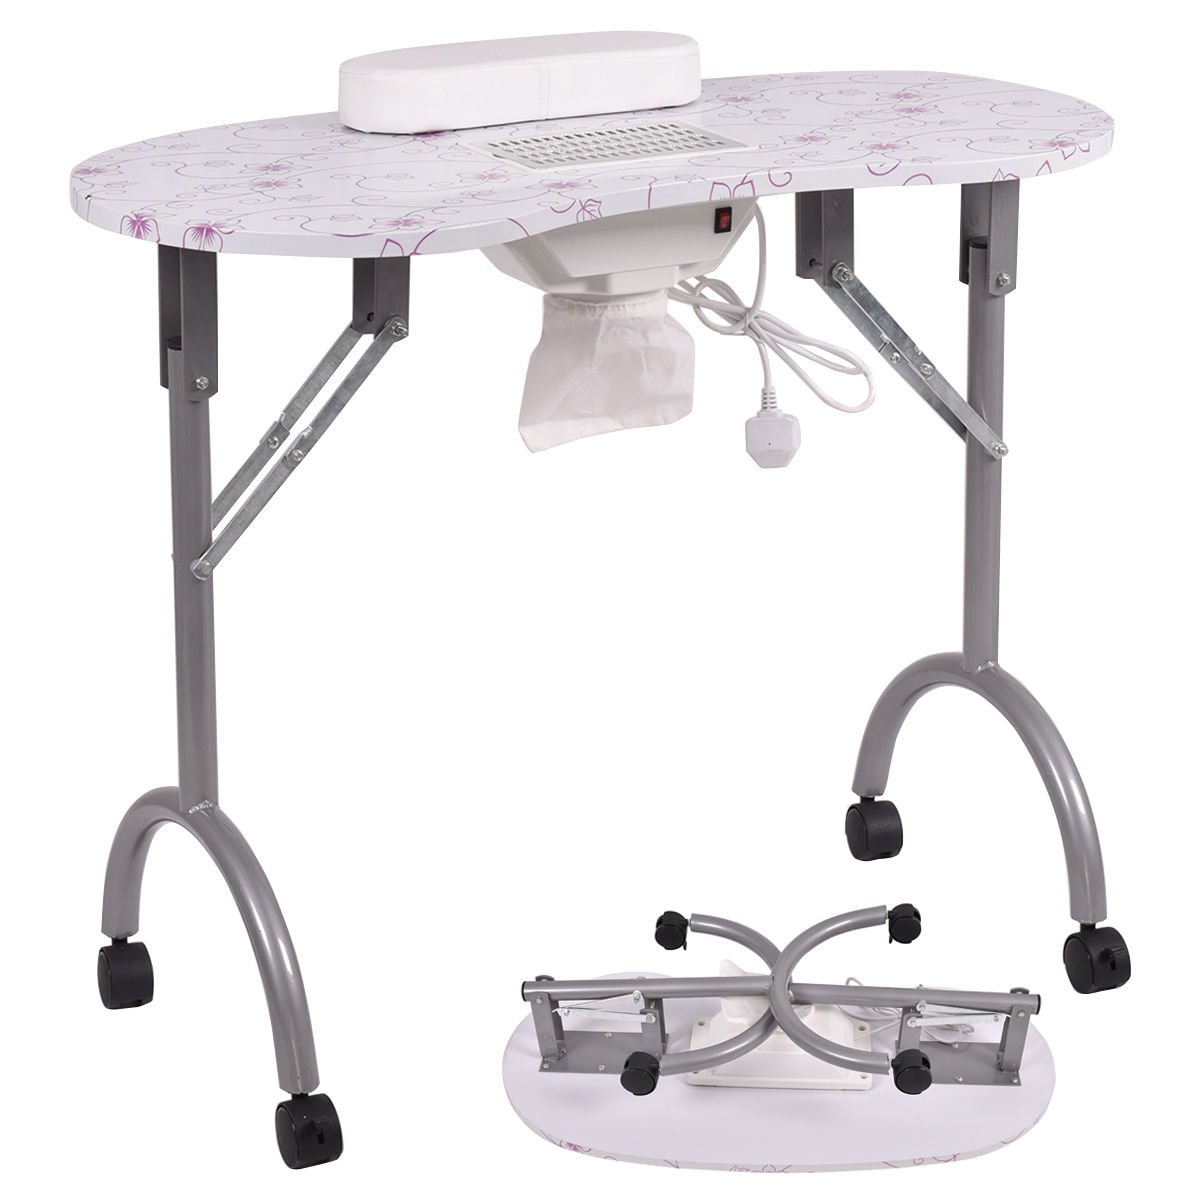 New MTN-G Folding Portable Vented Manicure Table Nail Desk Salon Spa With Fan & Carry Bag